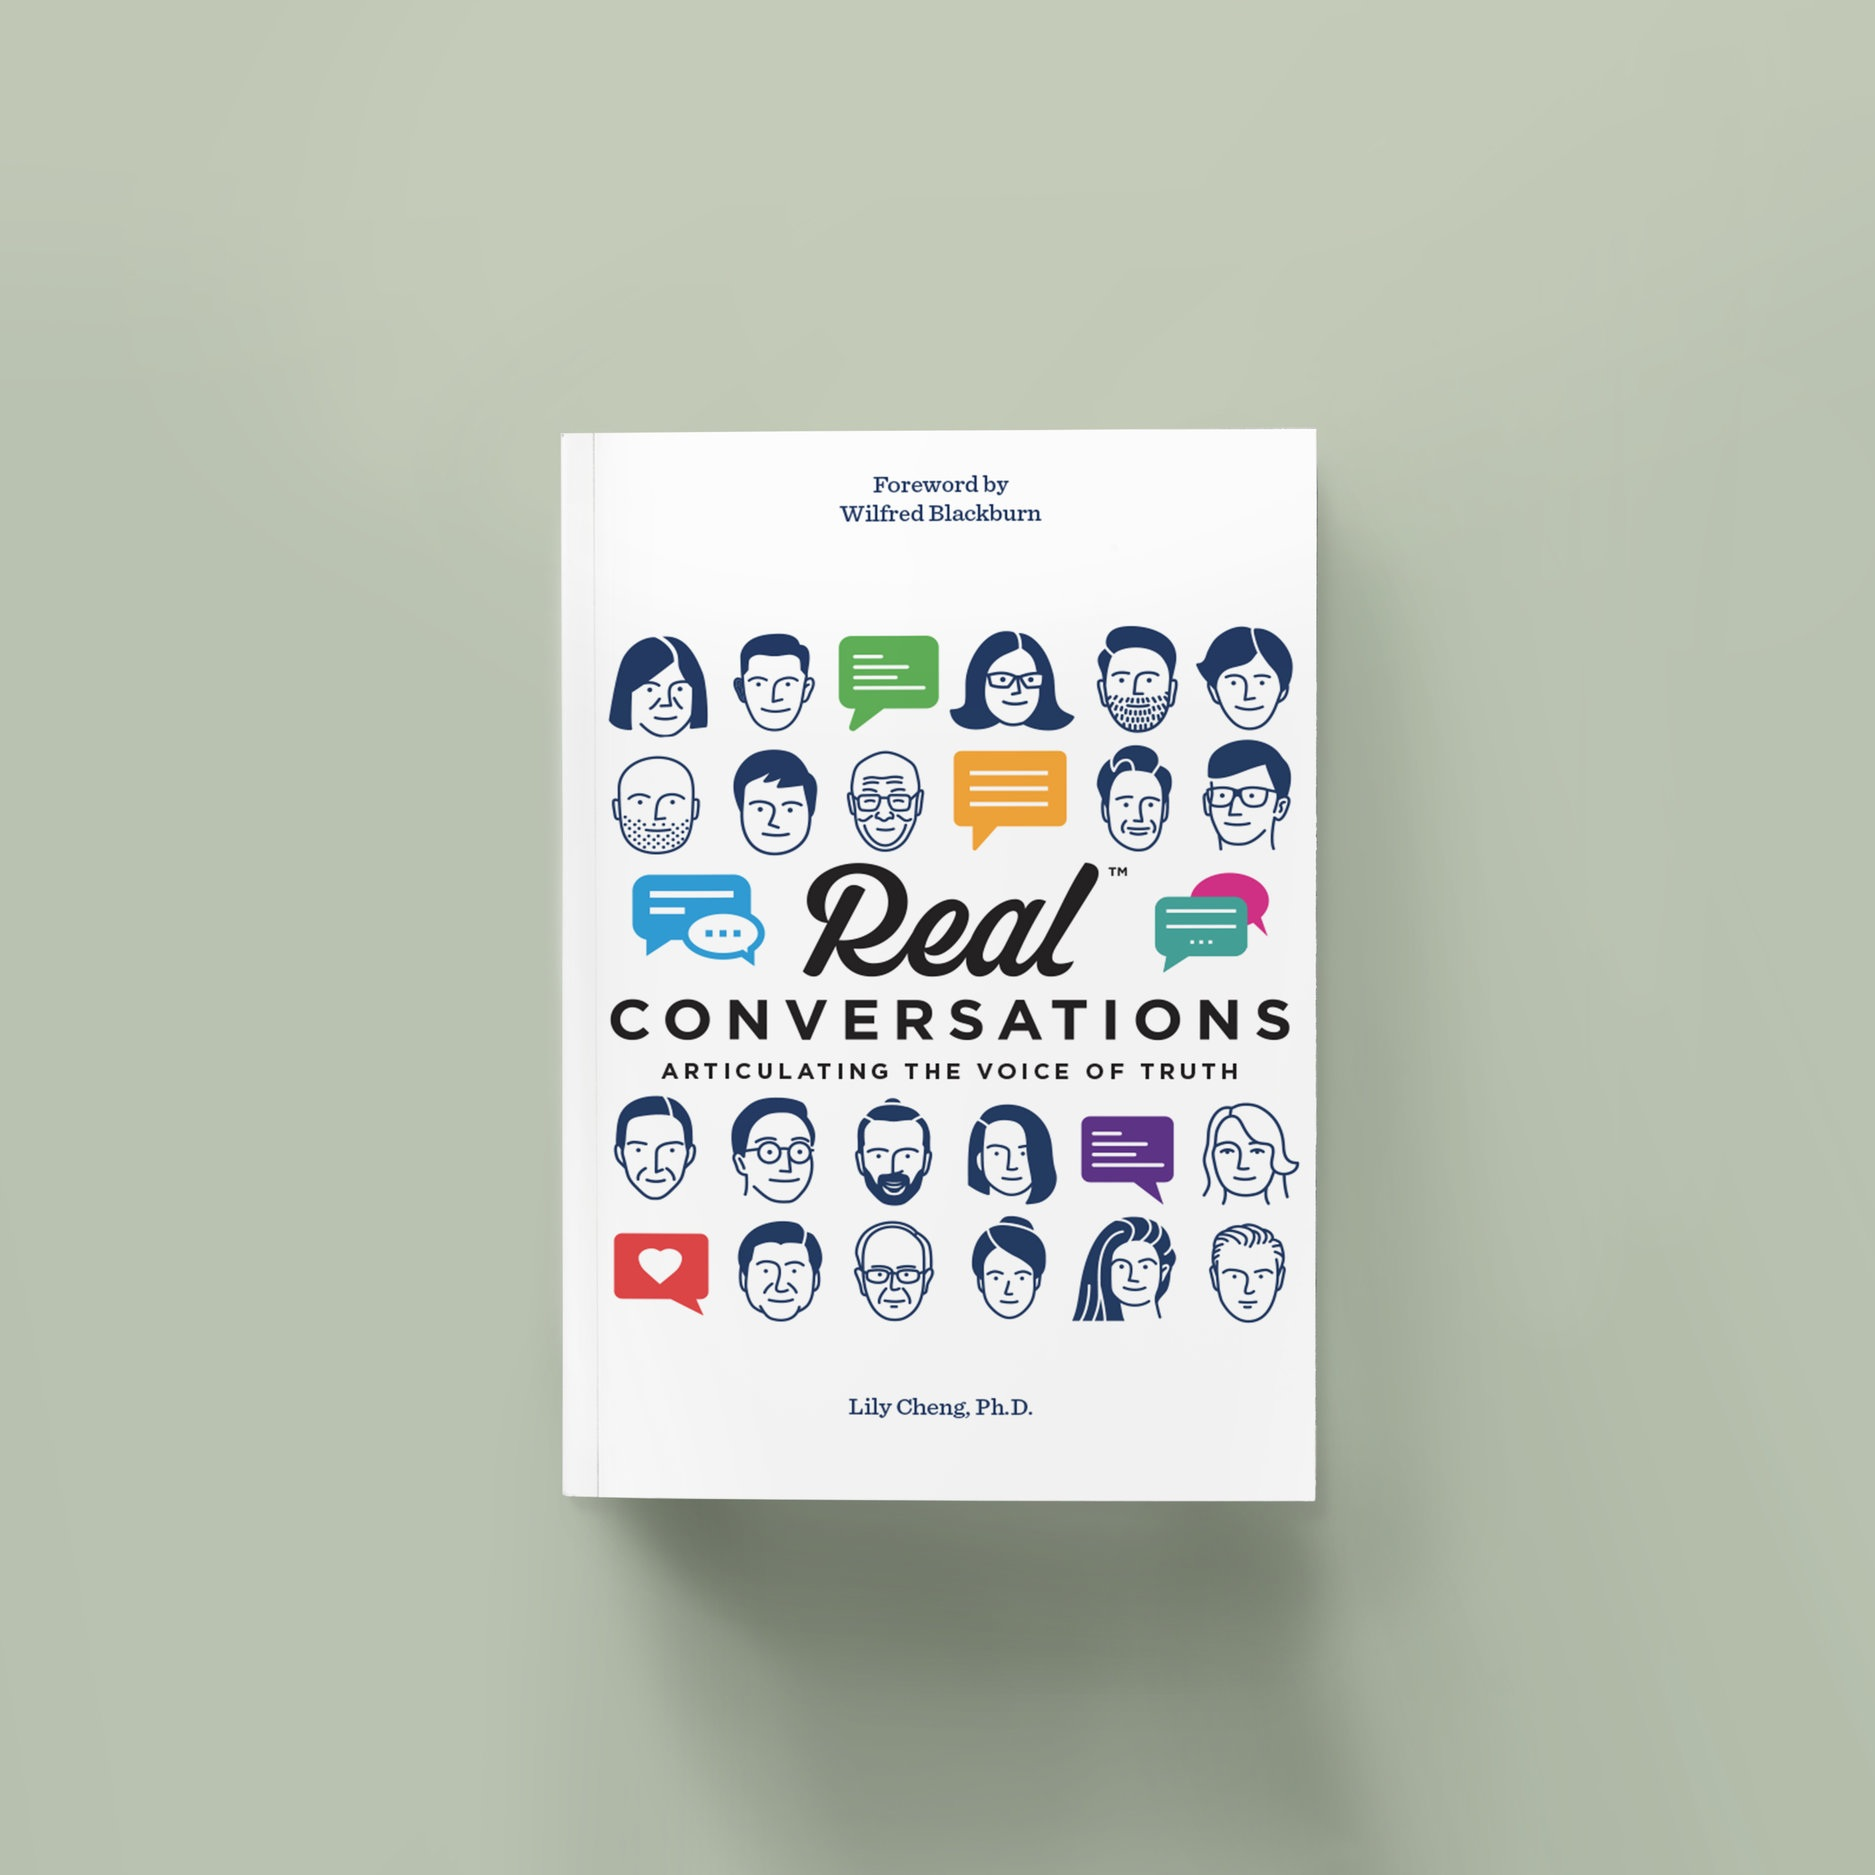 Real Conversations: Articulating the Voice of Truth    Writing with a style that is at once conversational yet grounded in the visionary wisdom of her years, Dr. Lily Cheng helps readers practice the art of conveying the voice of truth through the unique proposition that life's most universal principles can and should be applied to organisation development.